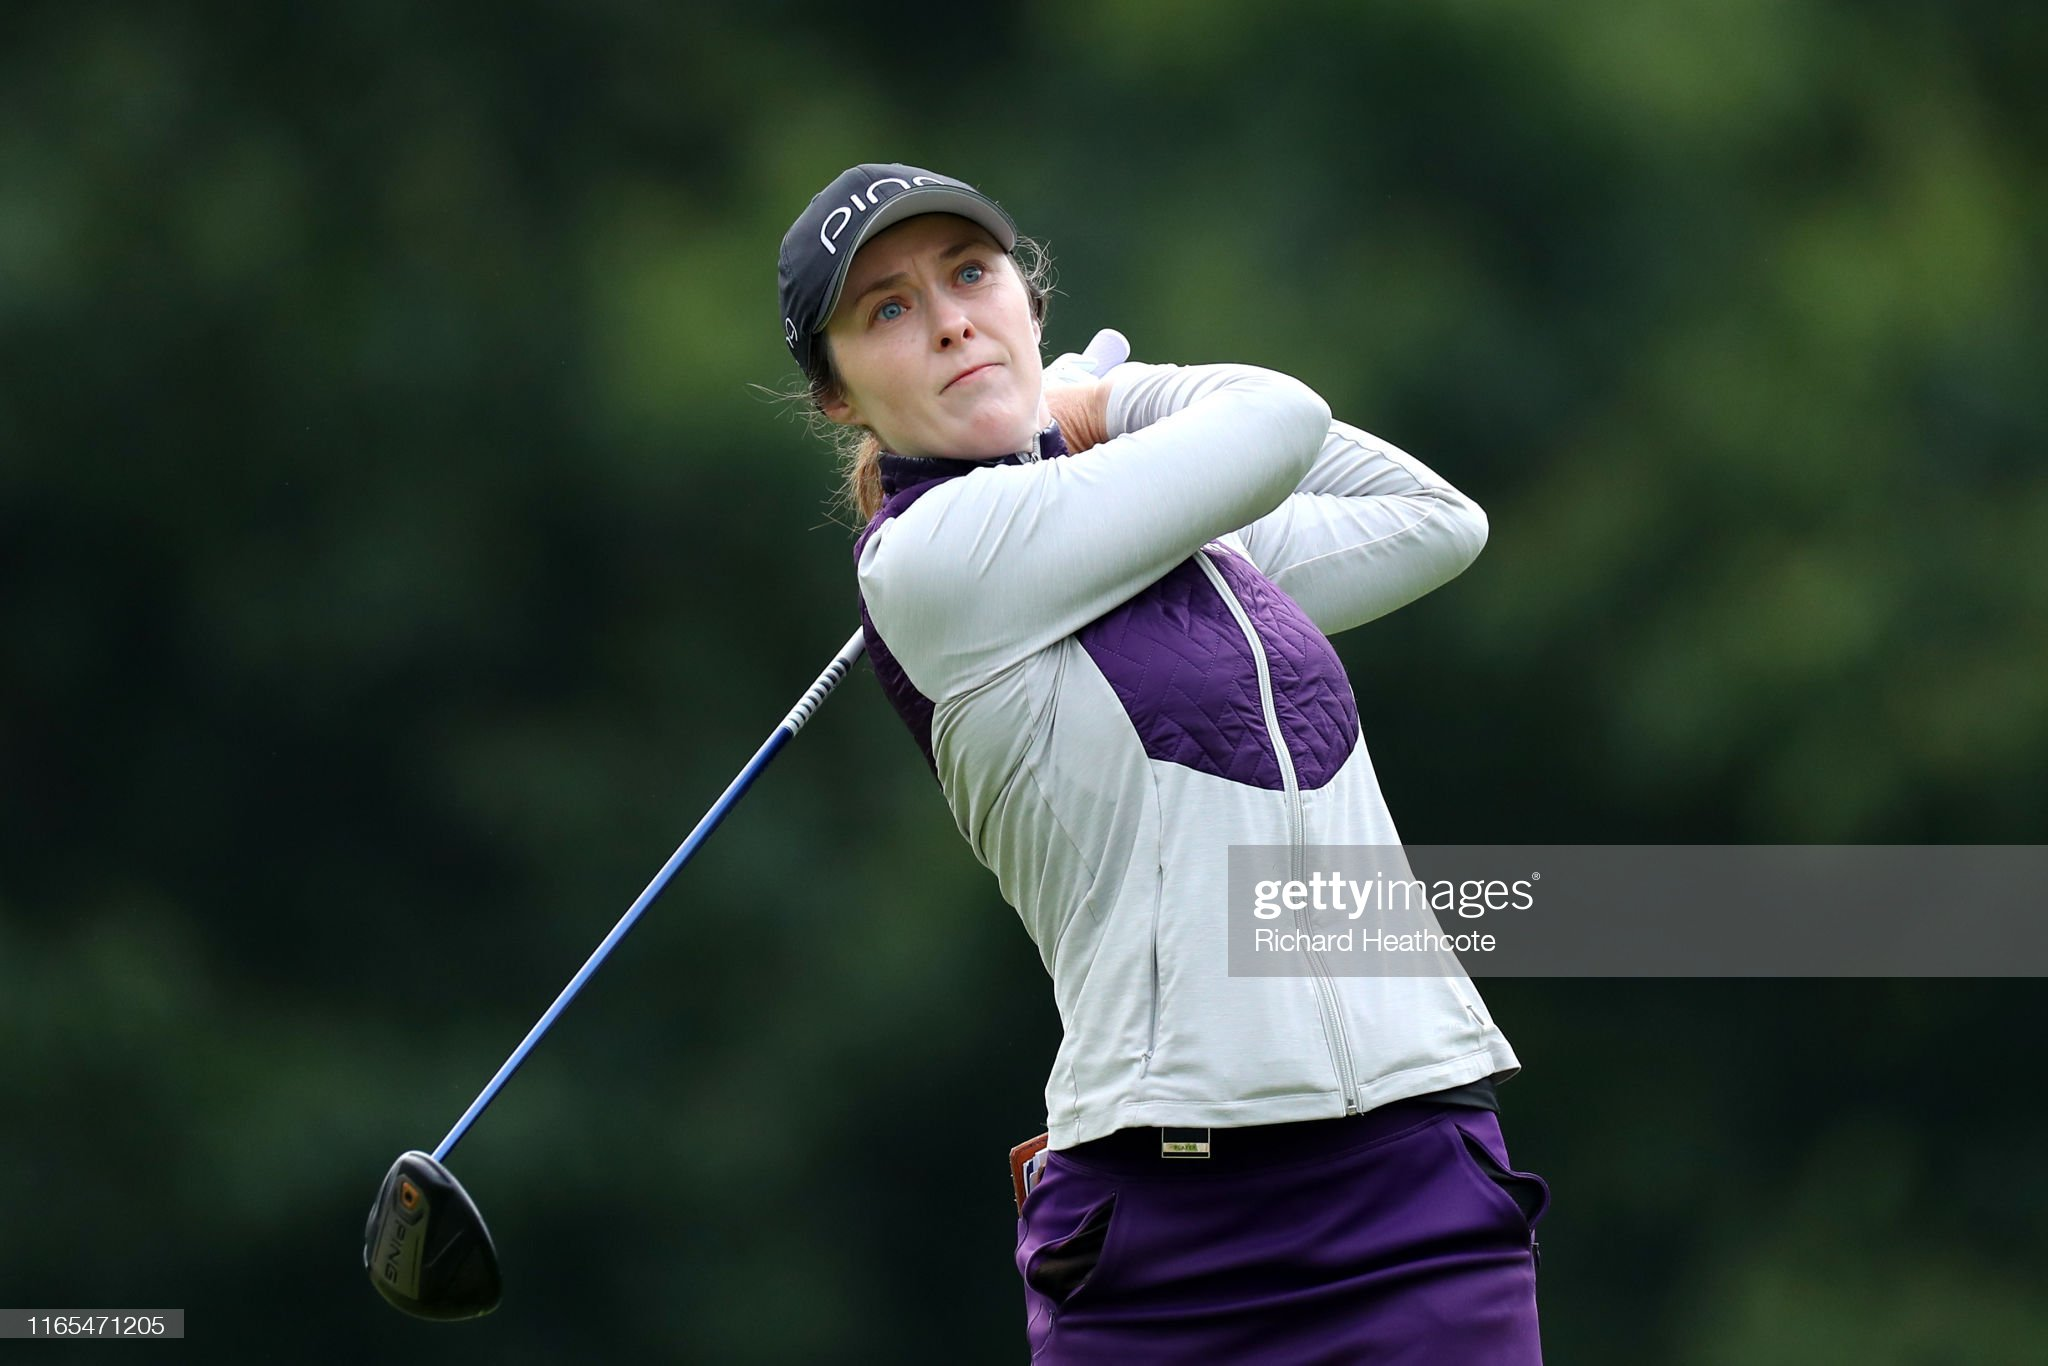 https://media.gettyimages.com/photos/brittany-altomare-of-the-united-states-of-america-tees-off-on-the-picture-id1165471205?s=2048x2048